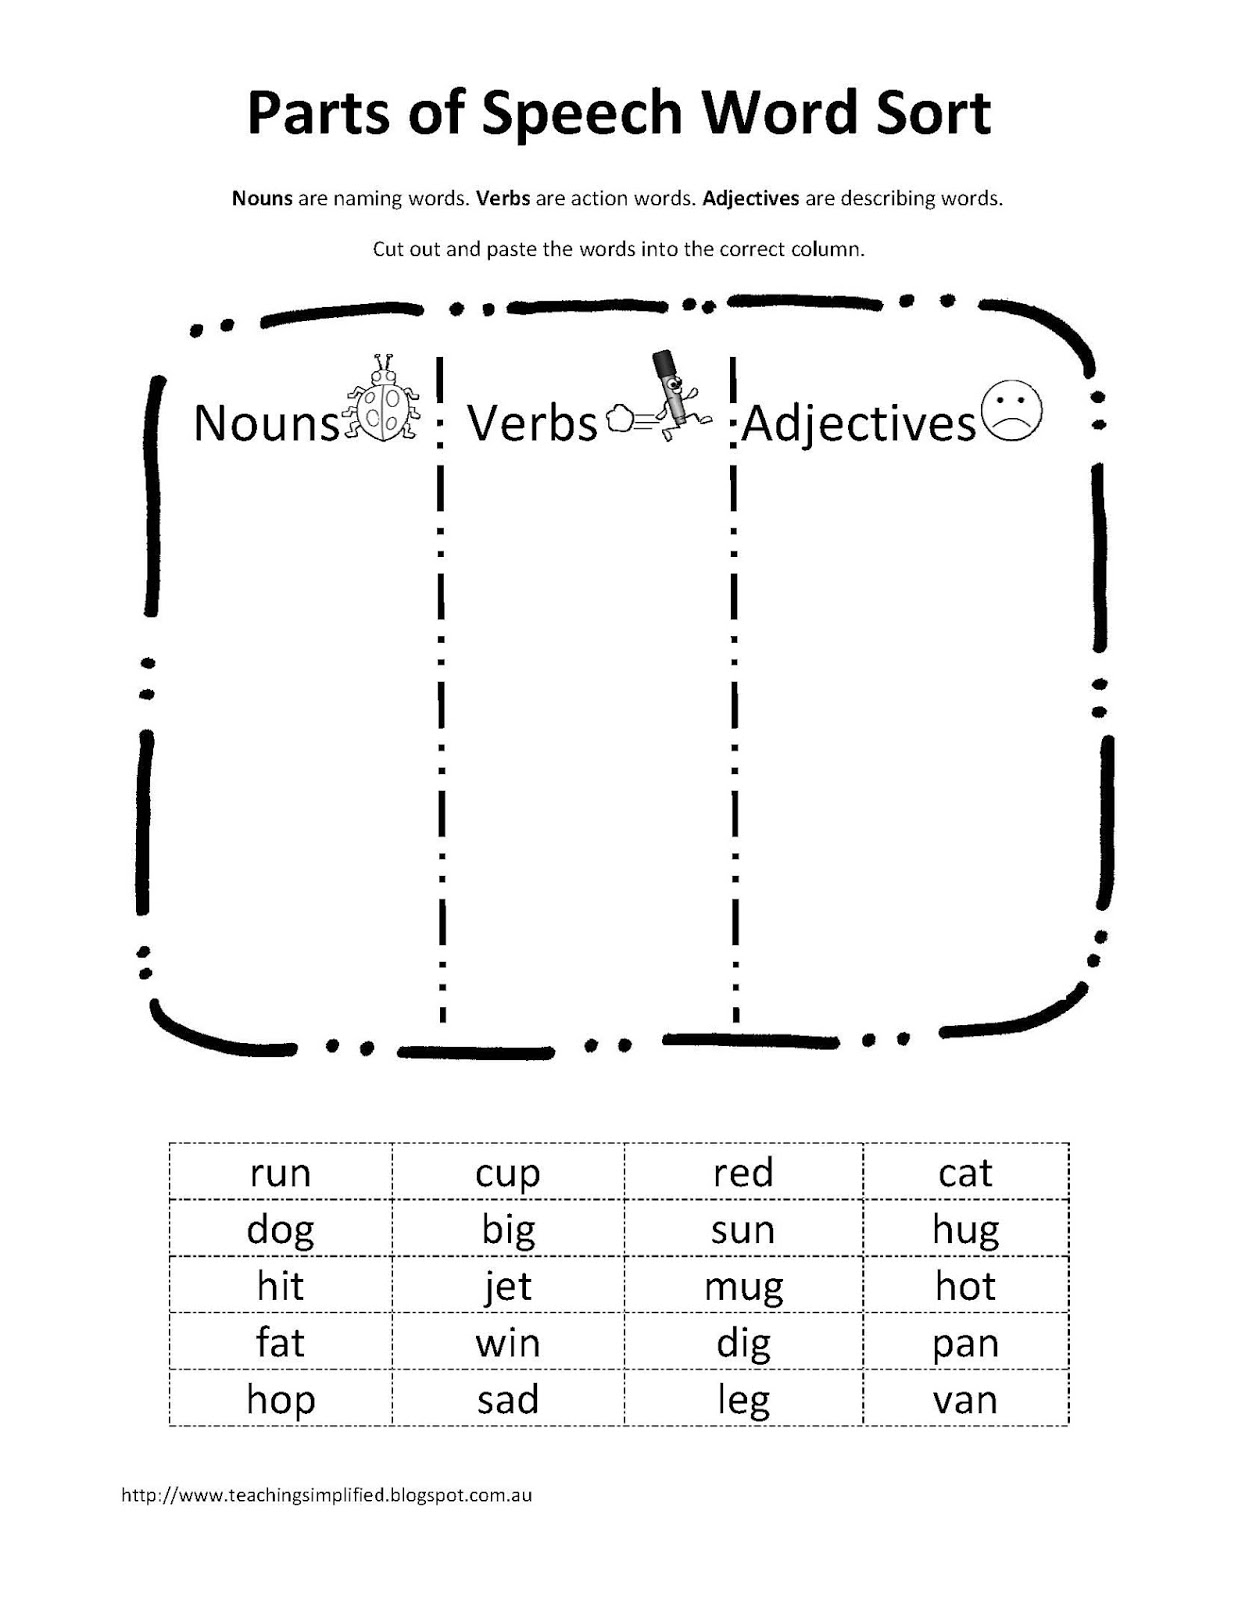 Printables Free Parts Of Speech Worksheets teaching simplified free download parts of speech word sort sort